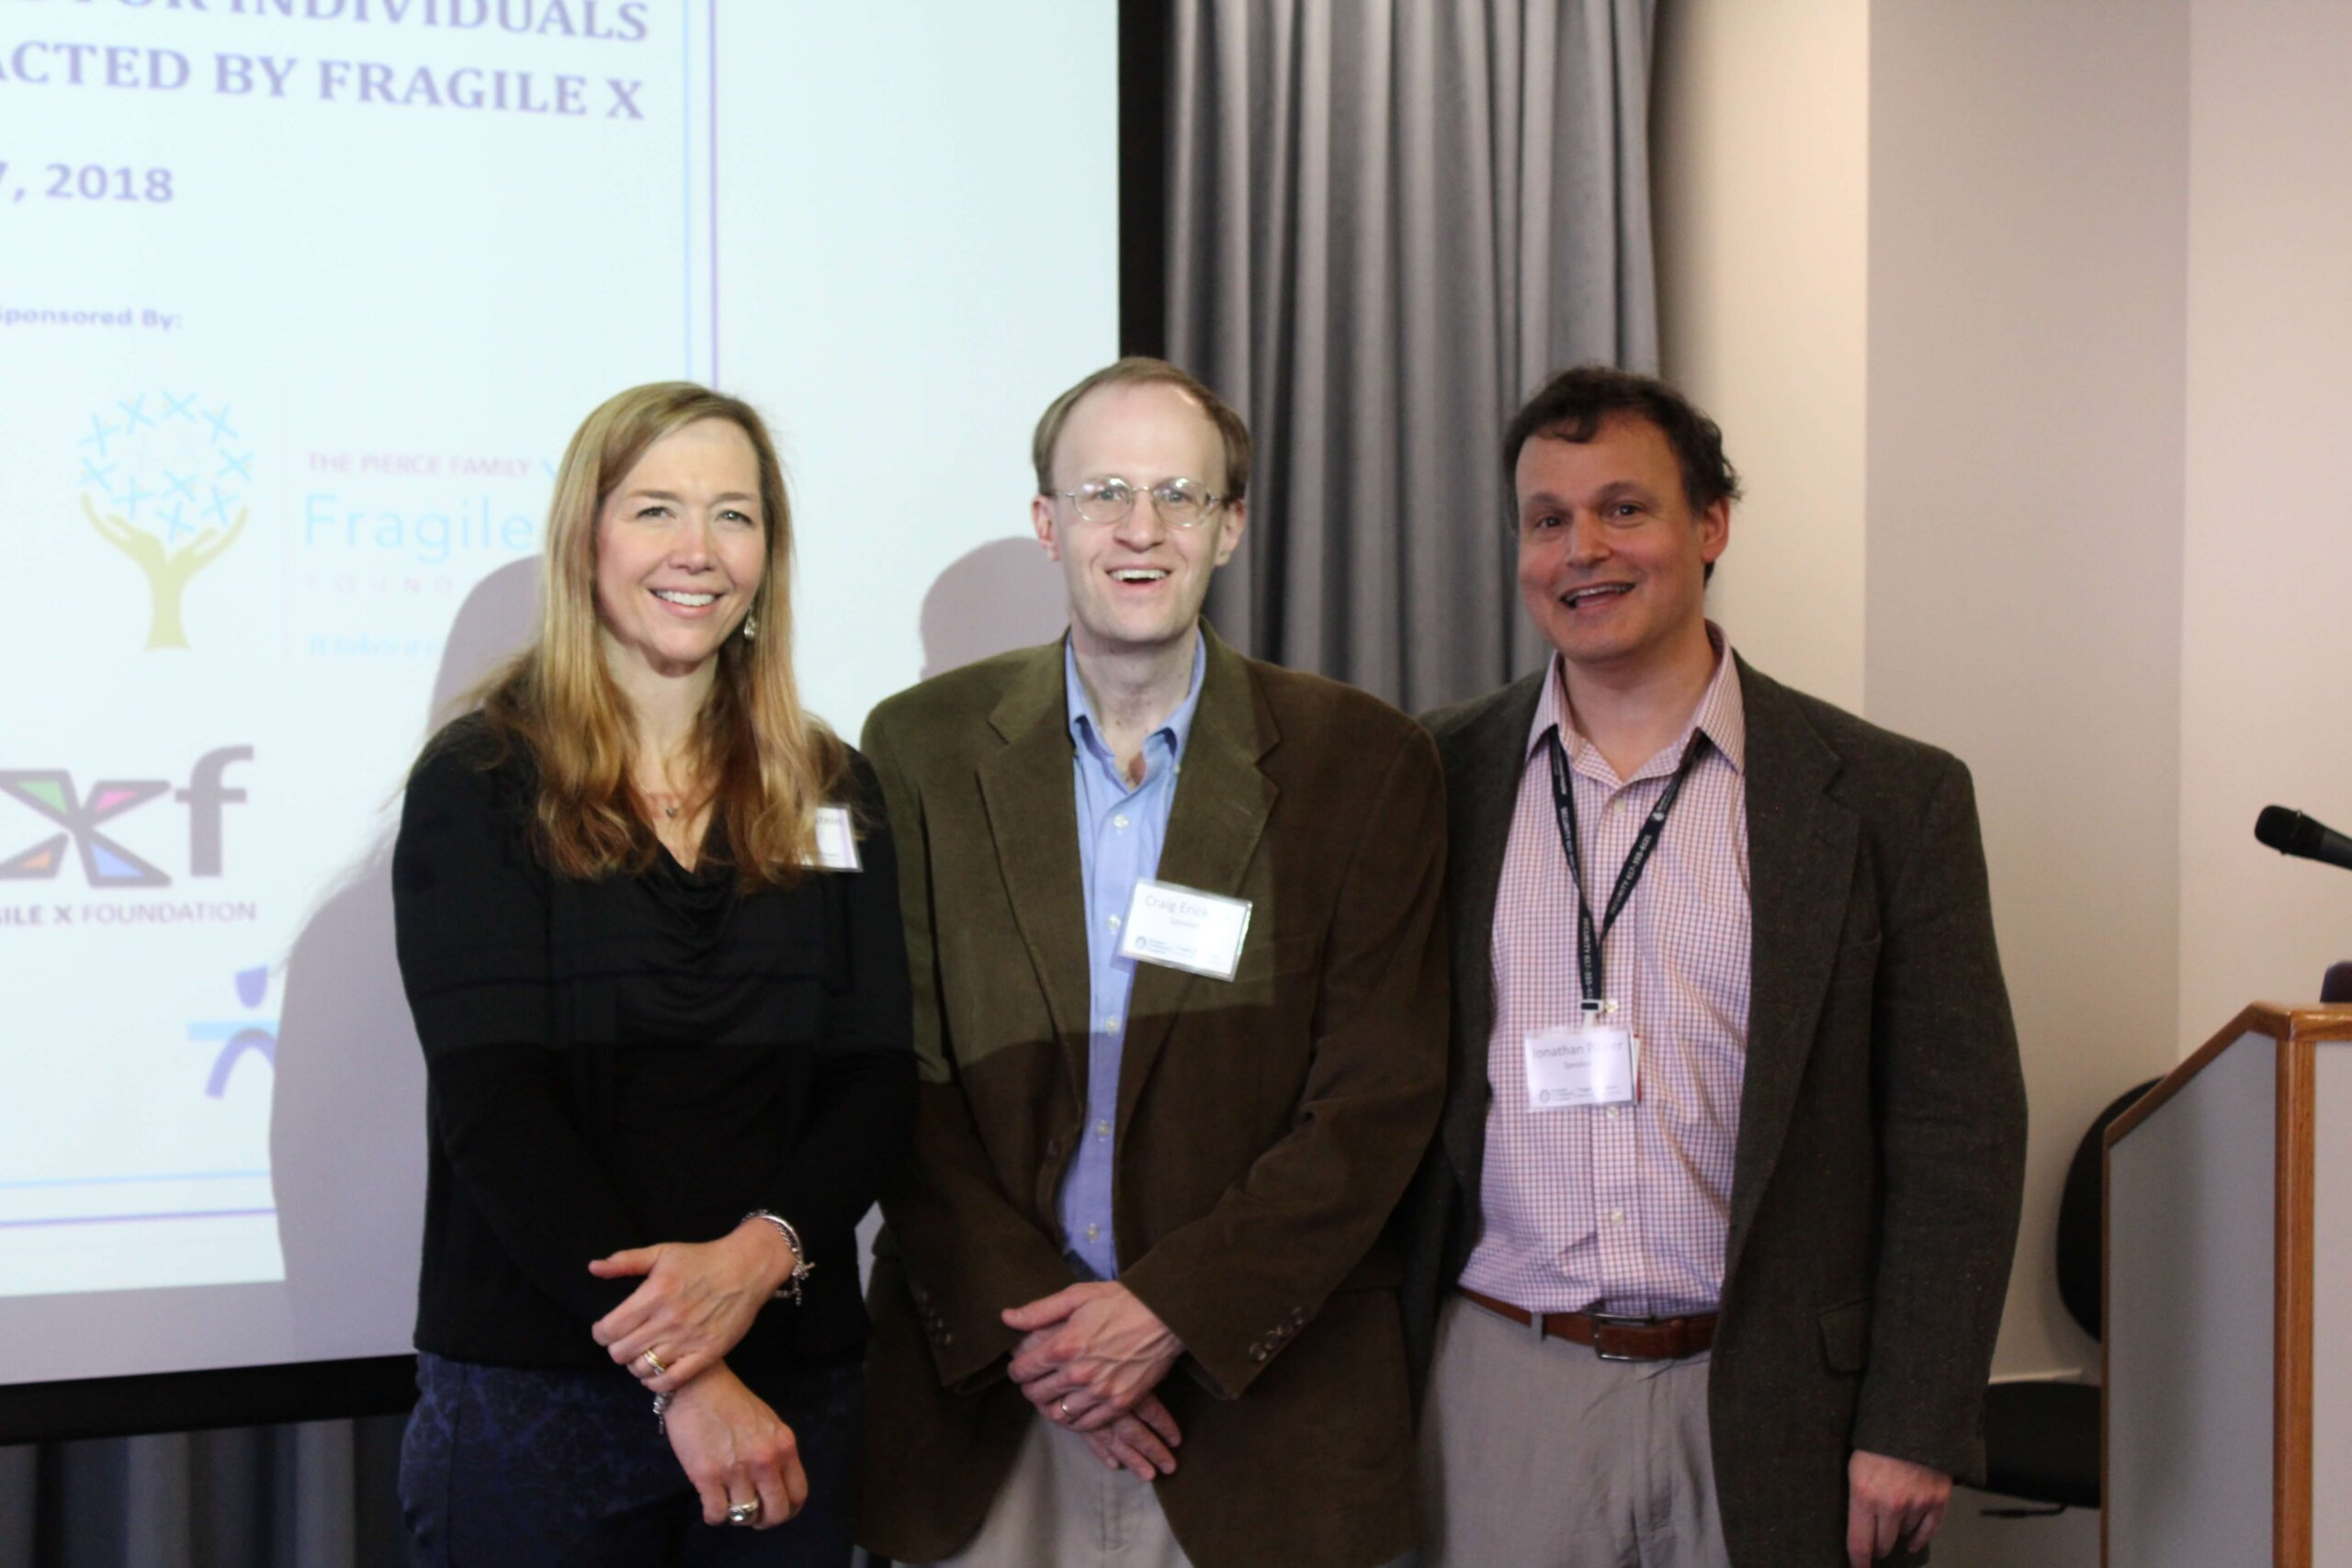 Speakers at the April 2018 Boston Conference